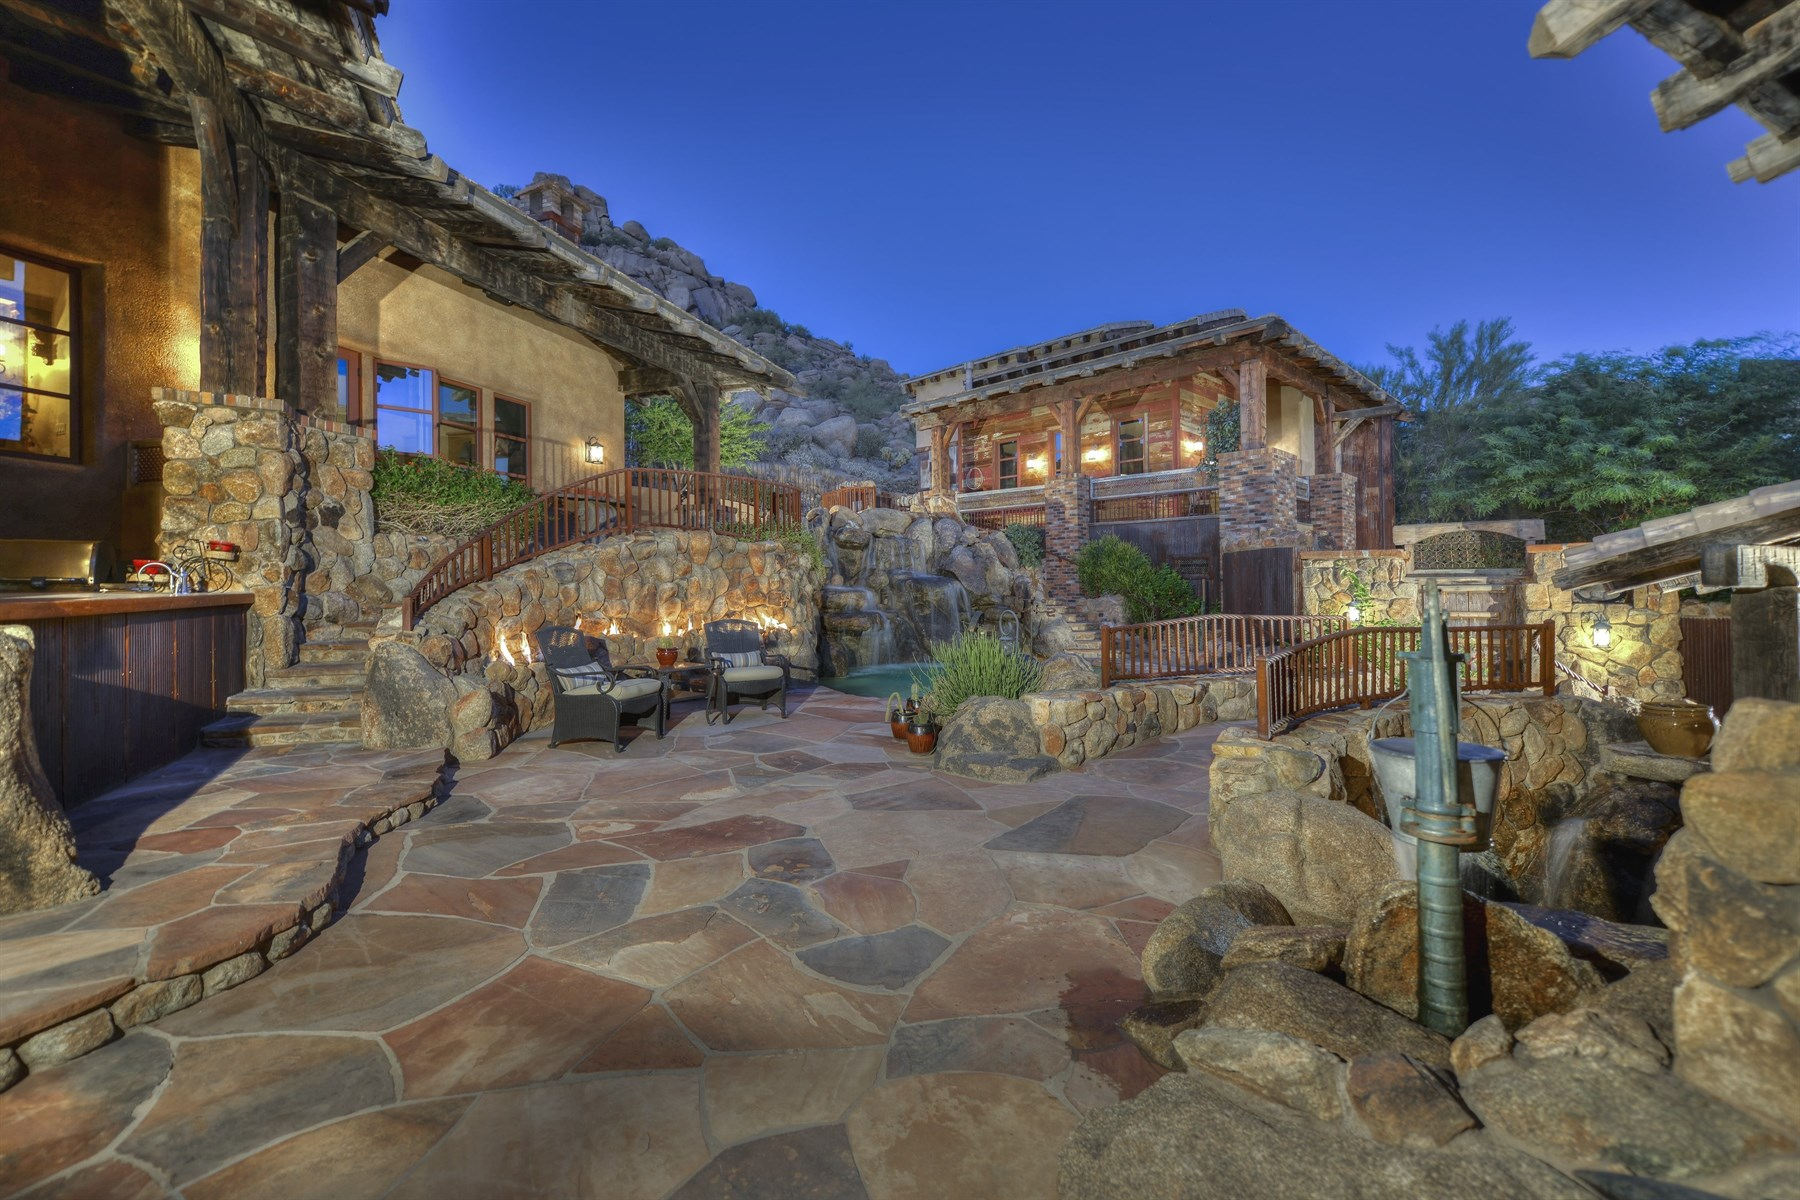 Tek Ailelik Ev için Satış at Elegant and Rustic Arizona-style on an elevated lot in Estancia 27555 N 103rd Way Scottsdale, Arizona, 85262 Amerika Birleşik Devletleri